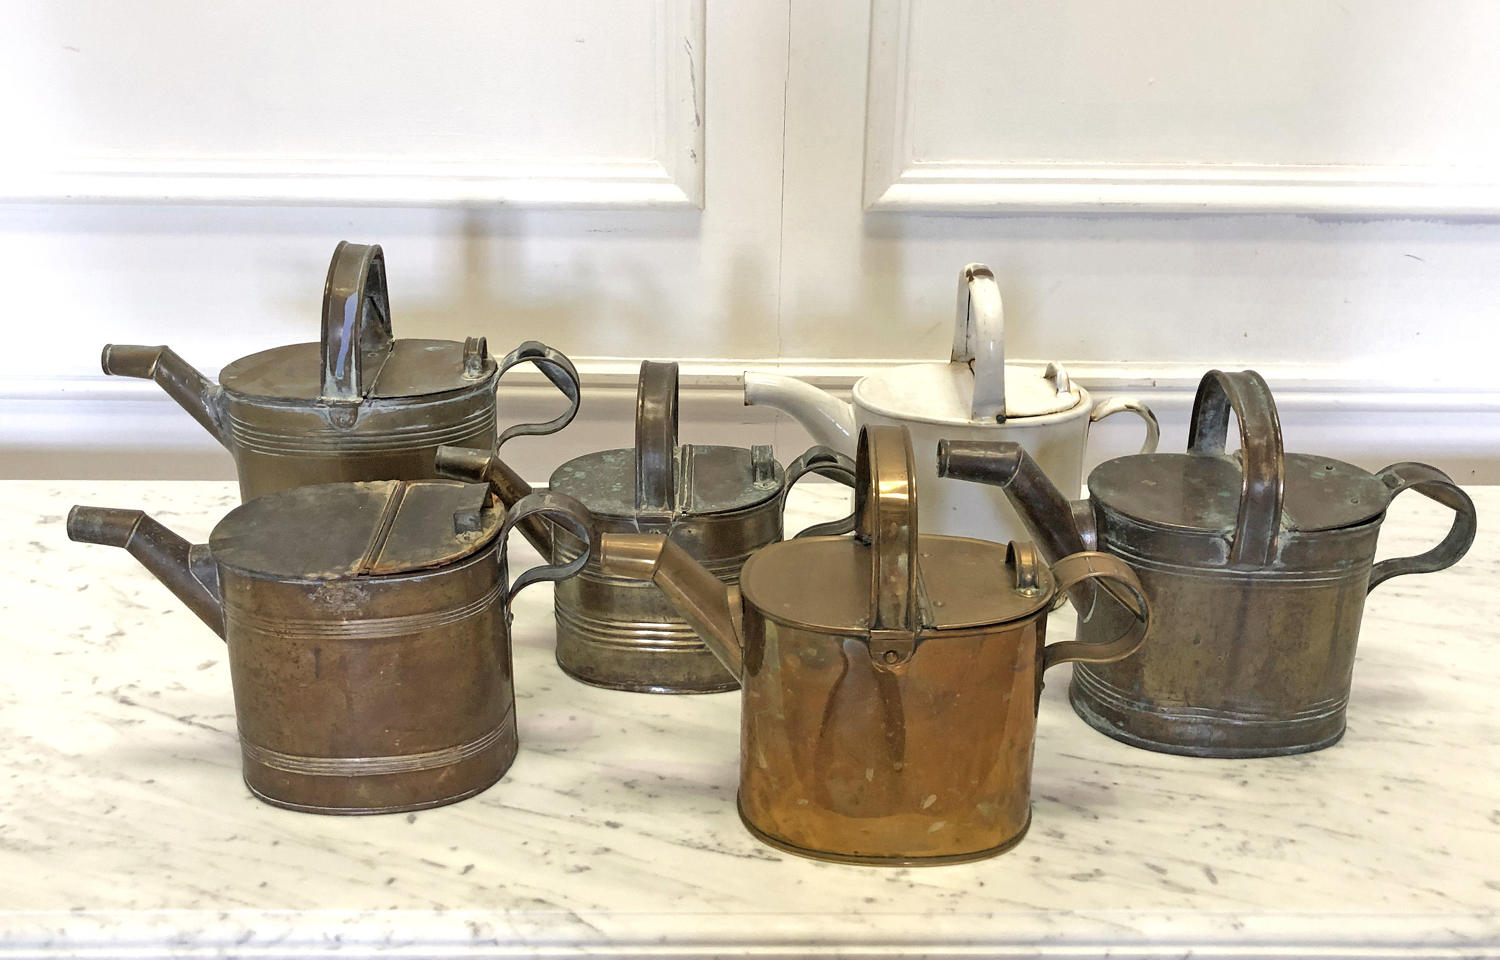 Collection of old English Watering Cans - circa 1920